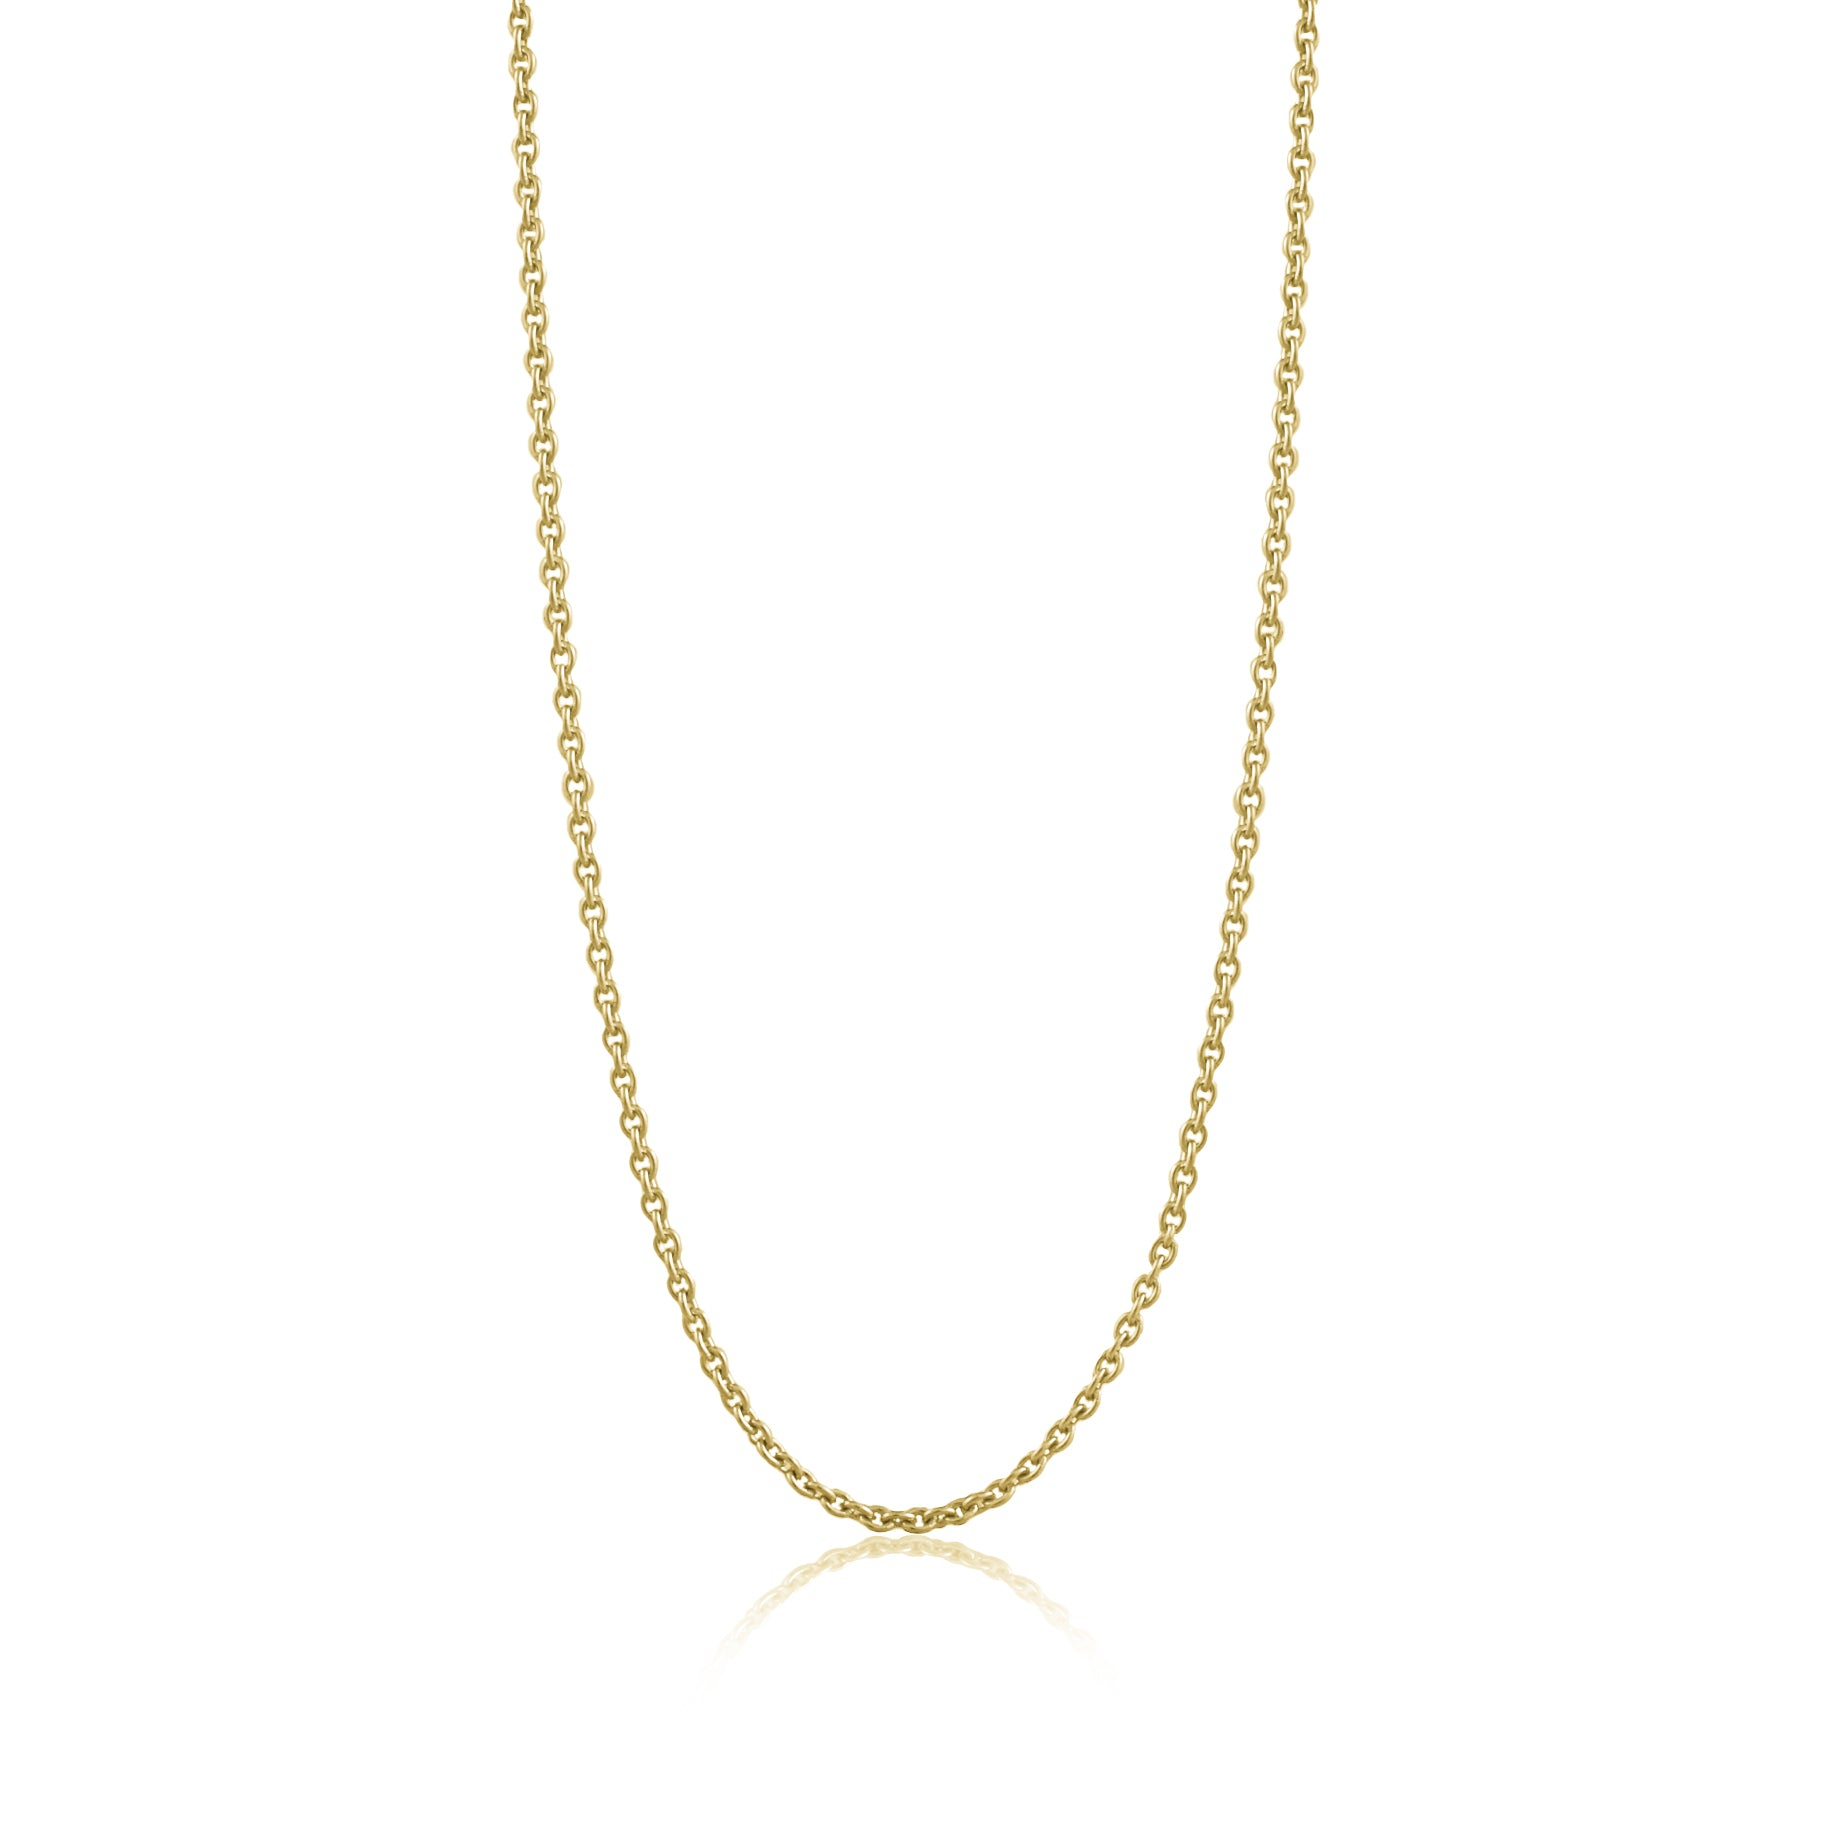 Luna & Rose Como Cable Chain - Gold